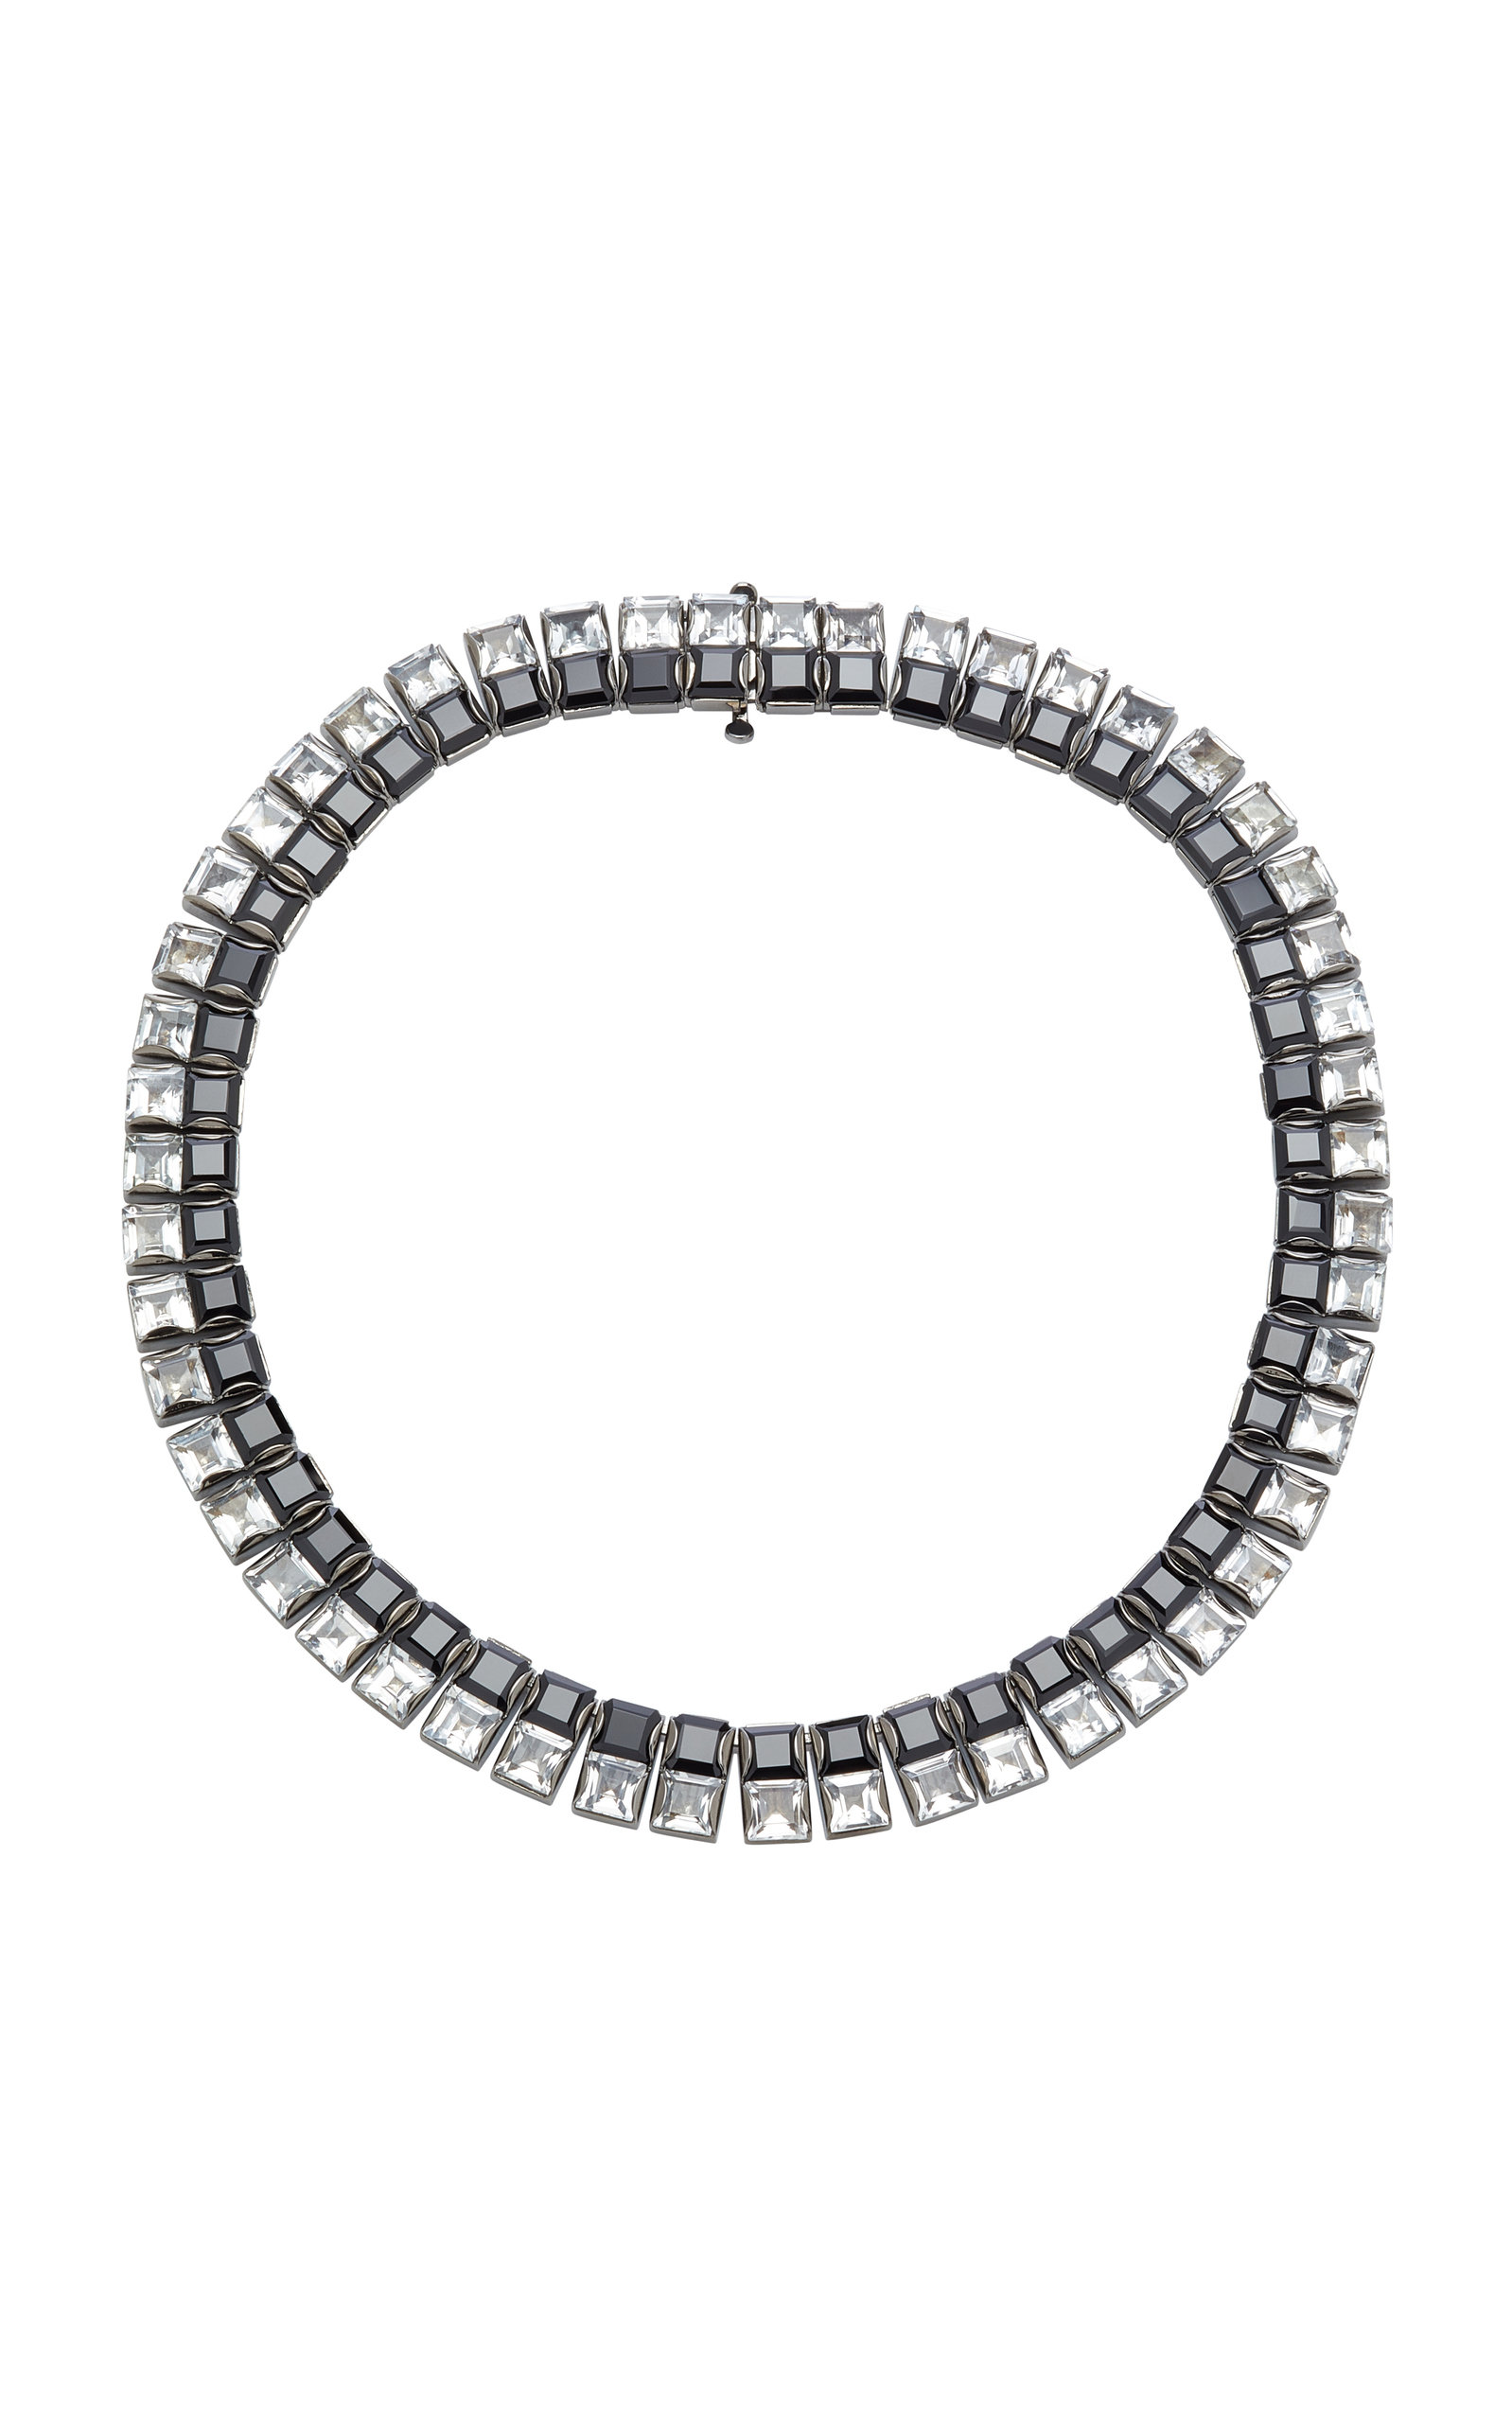 LYNN BAN JEWELRY Riviere Spinels And White Topaz Necklace in Black/White